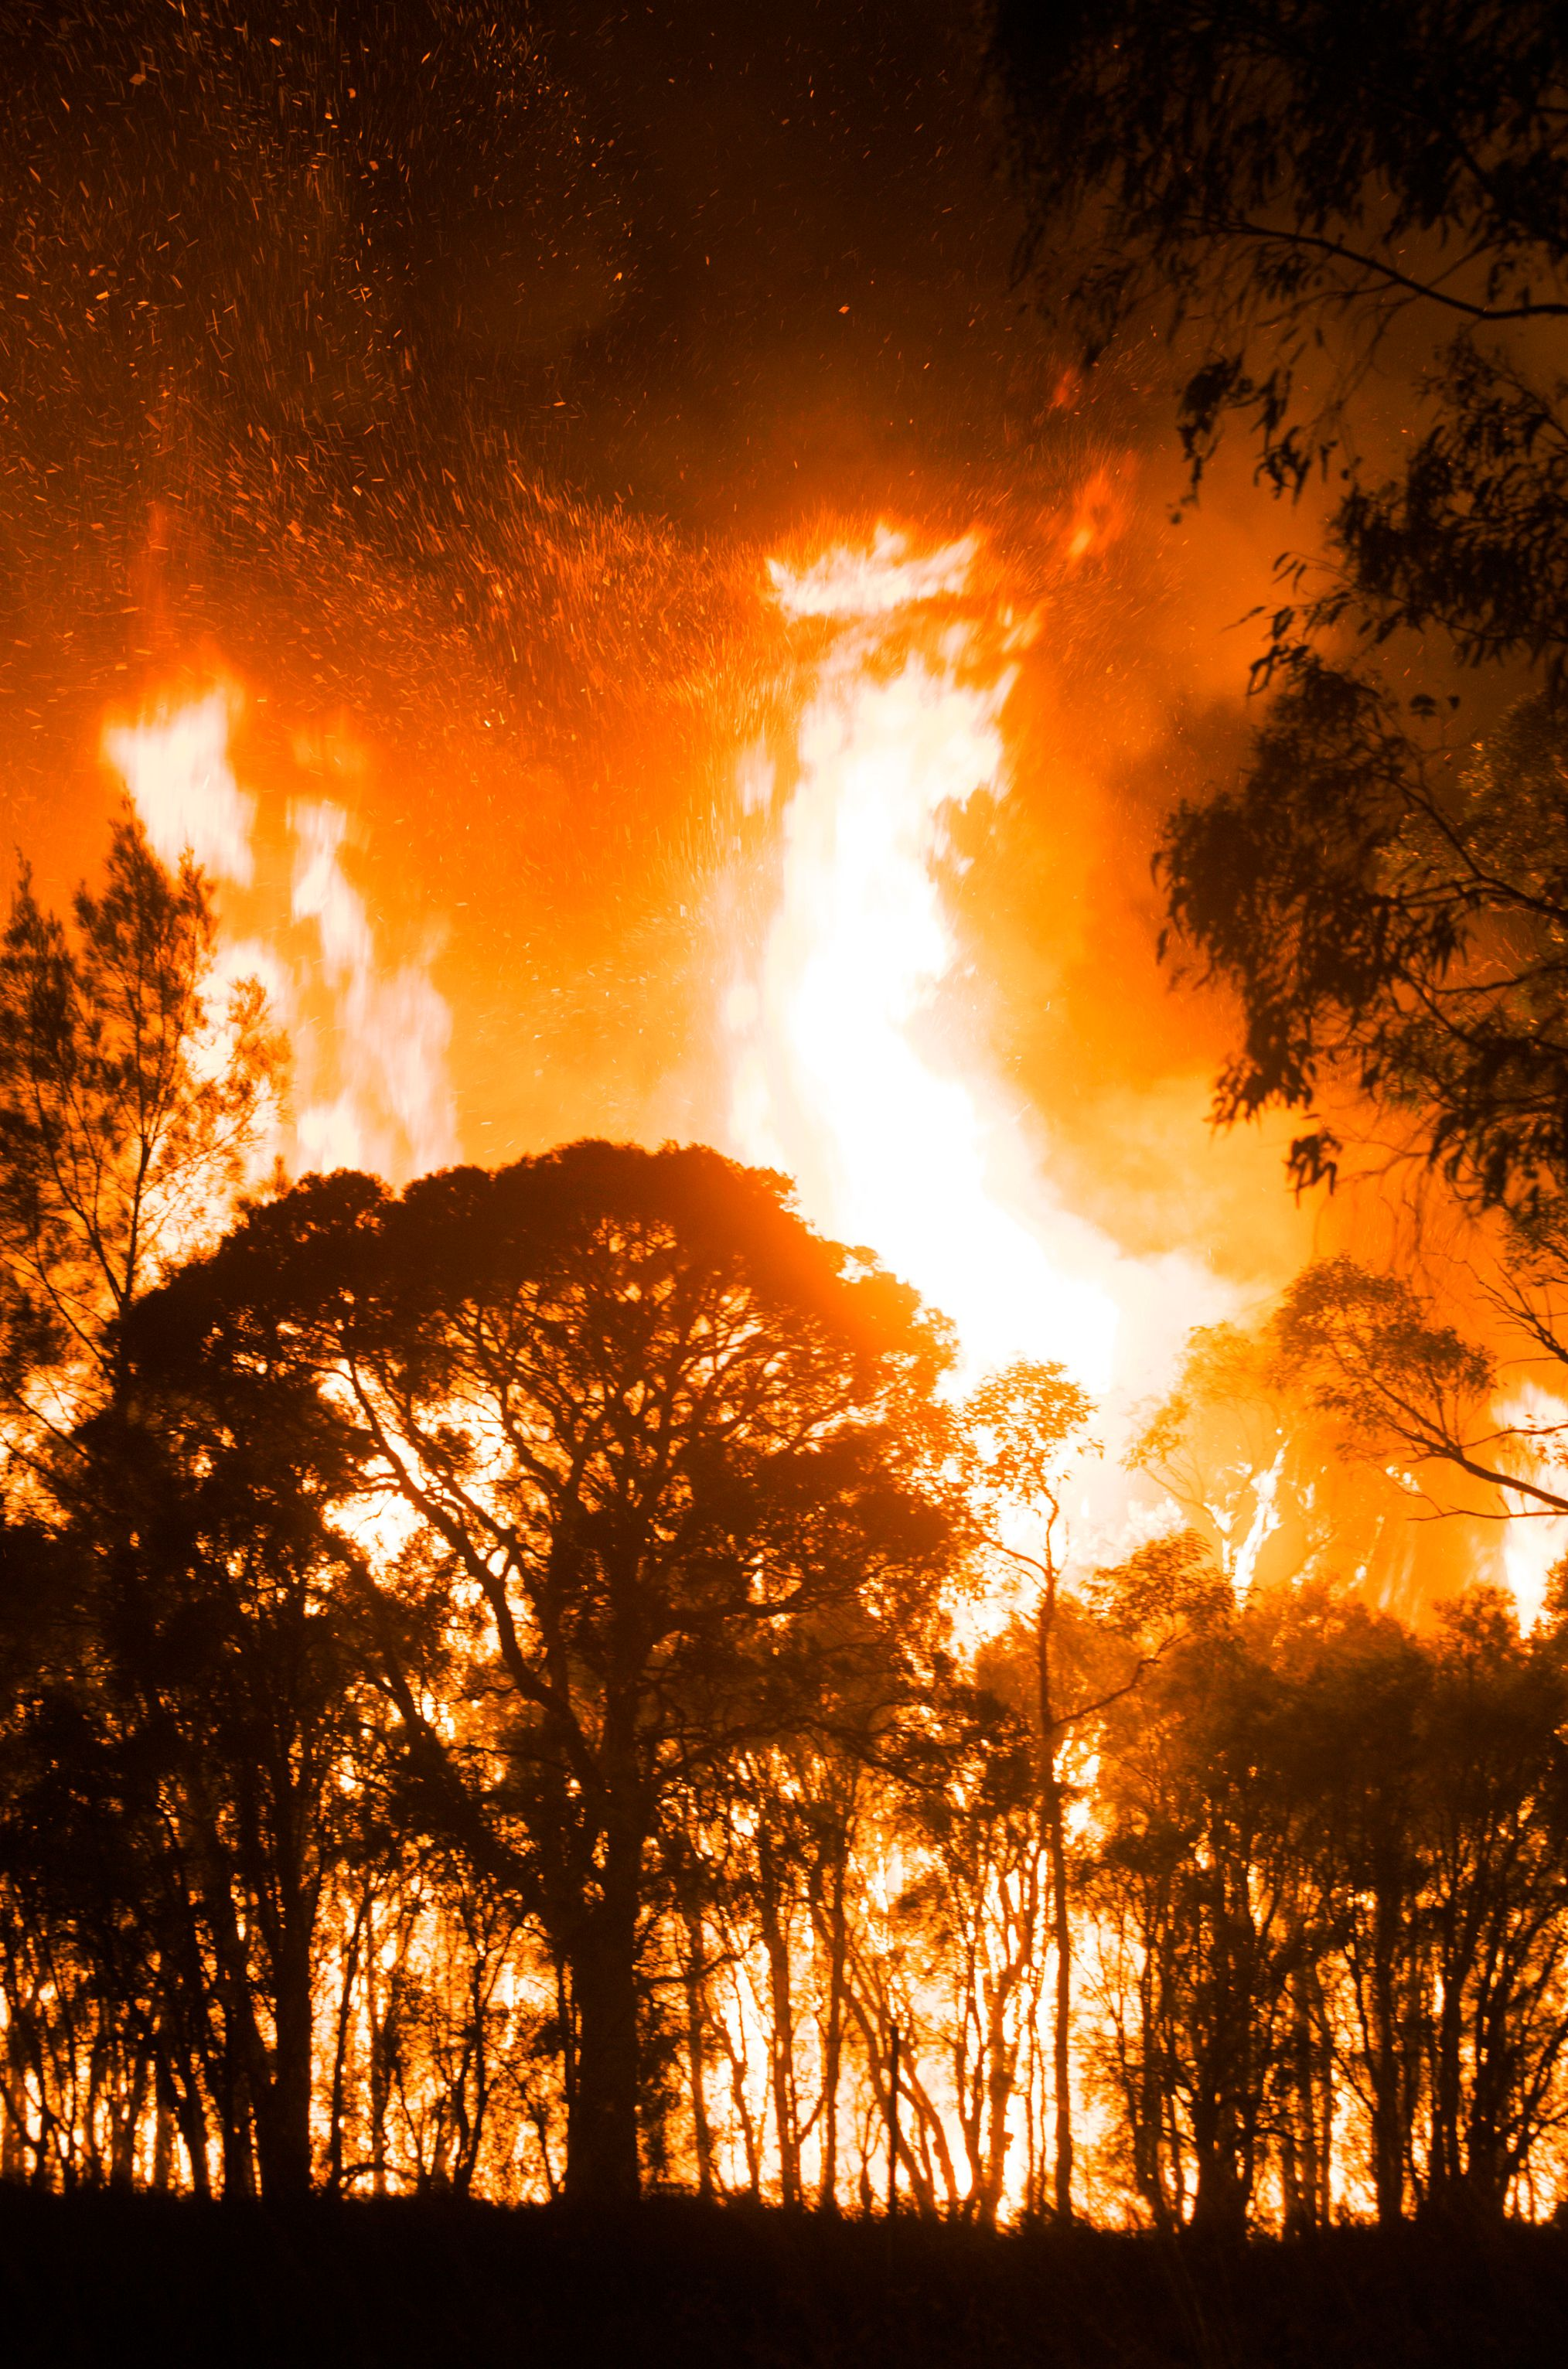 Australia's Devastating Wildfires in 2020 (With images